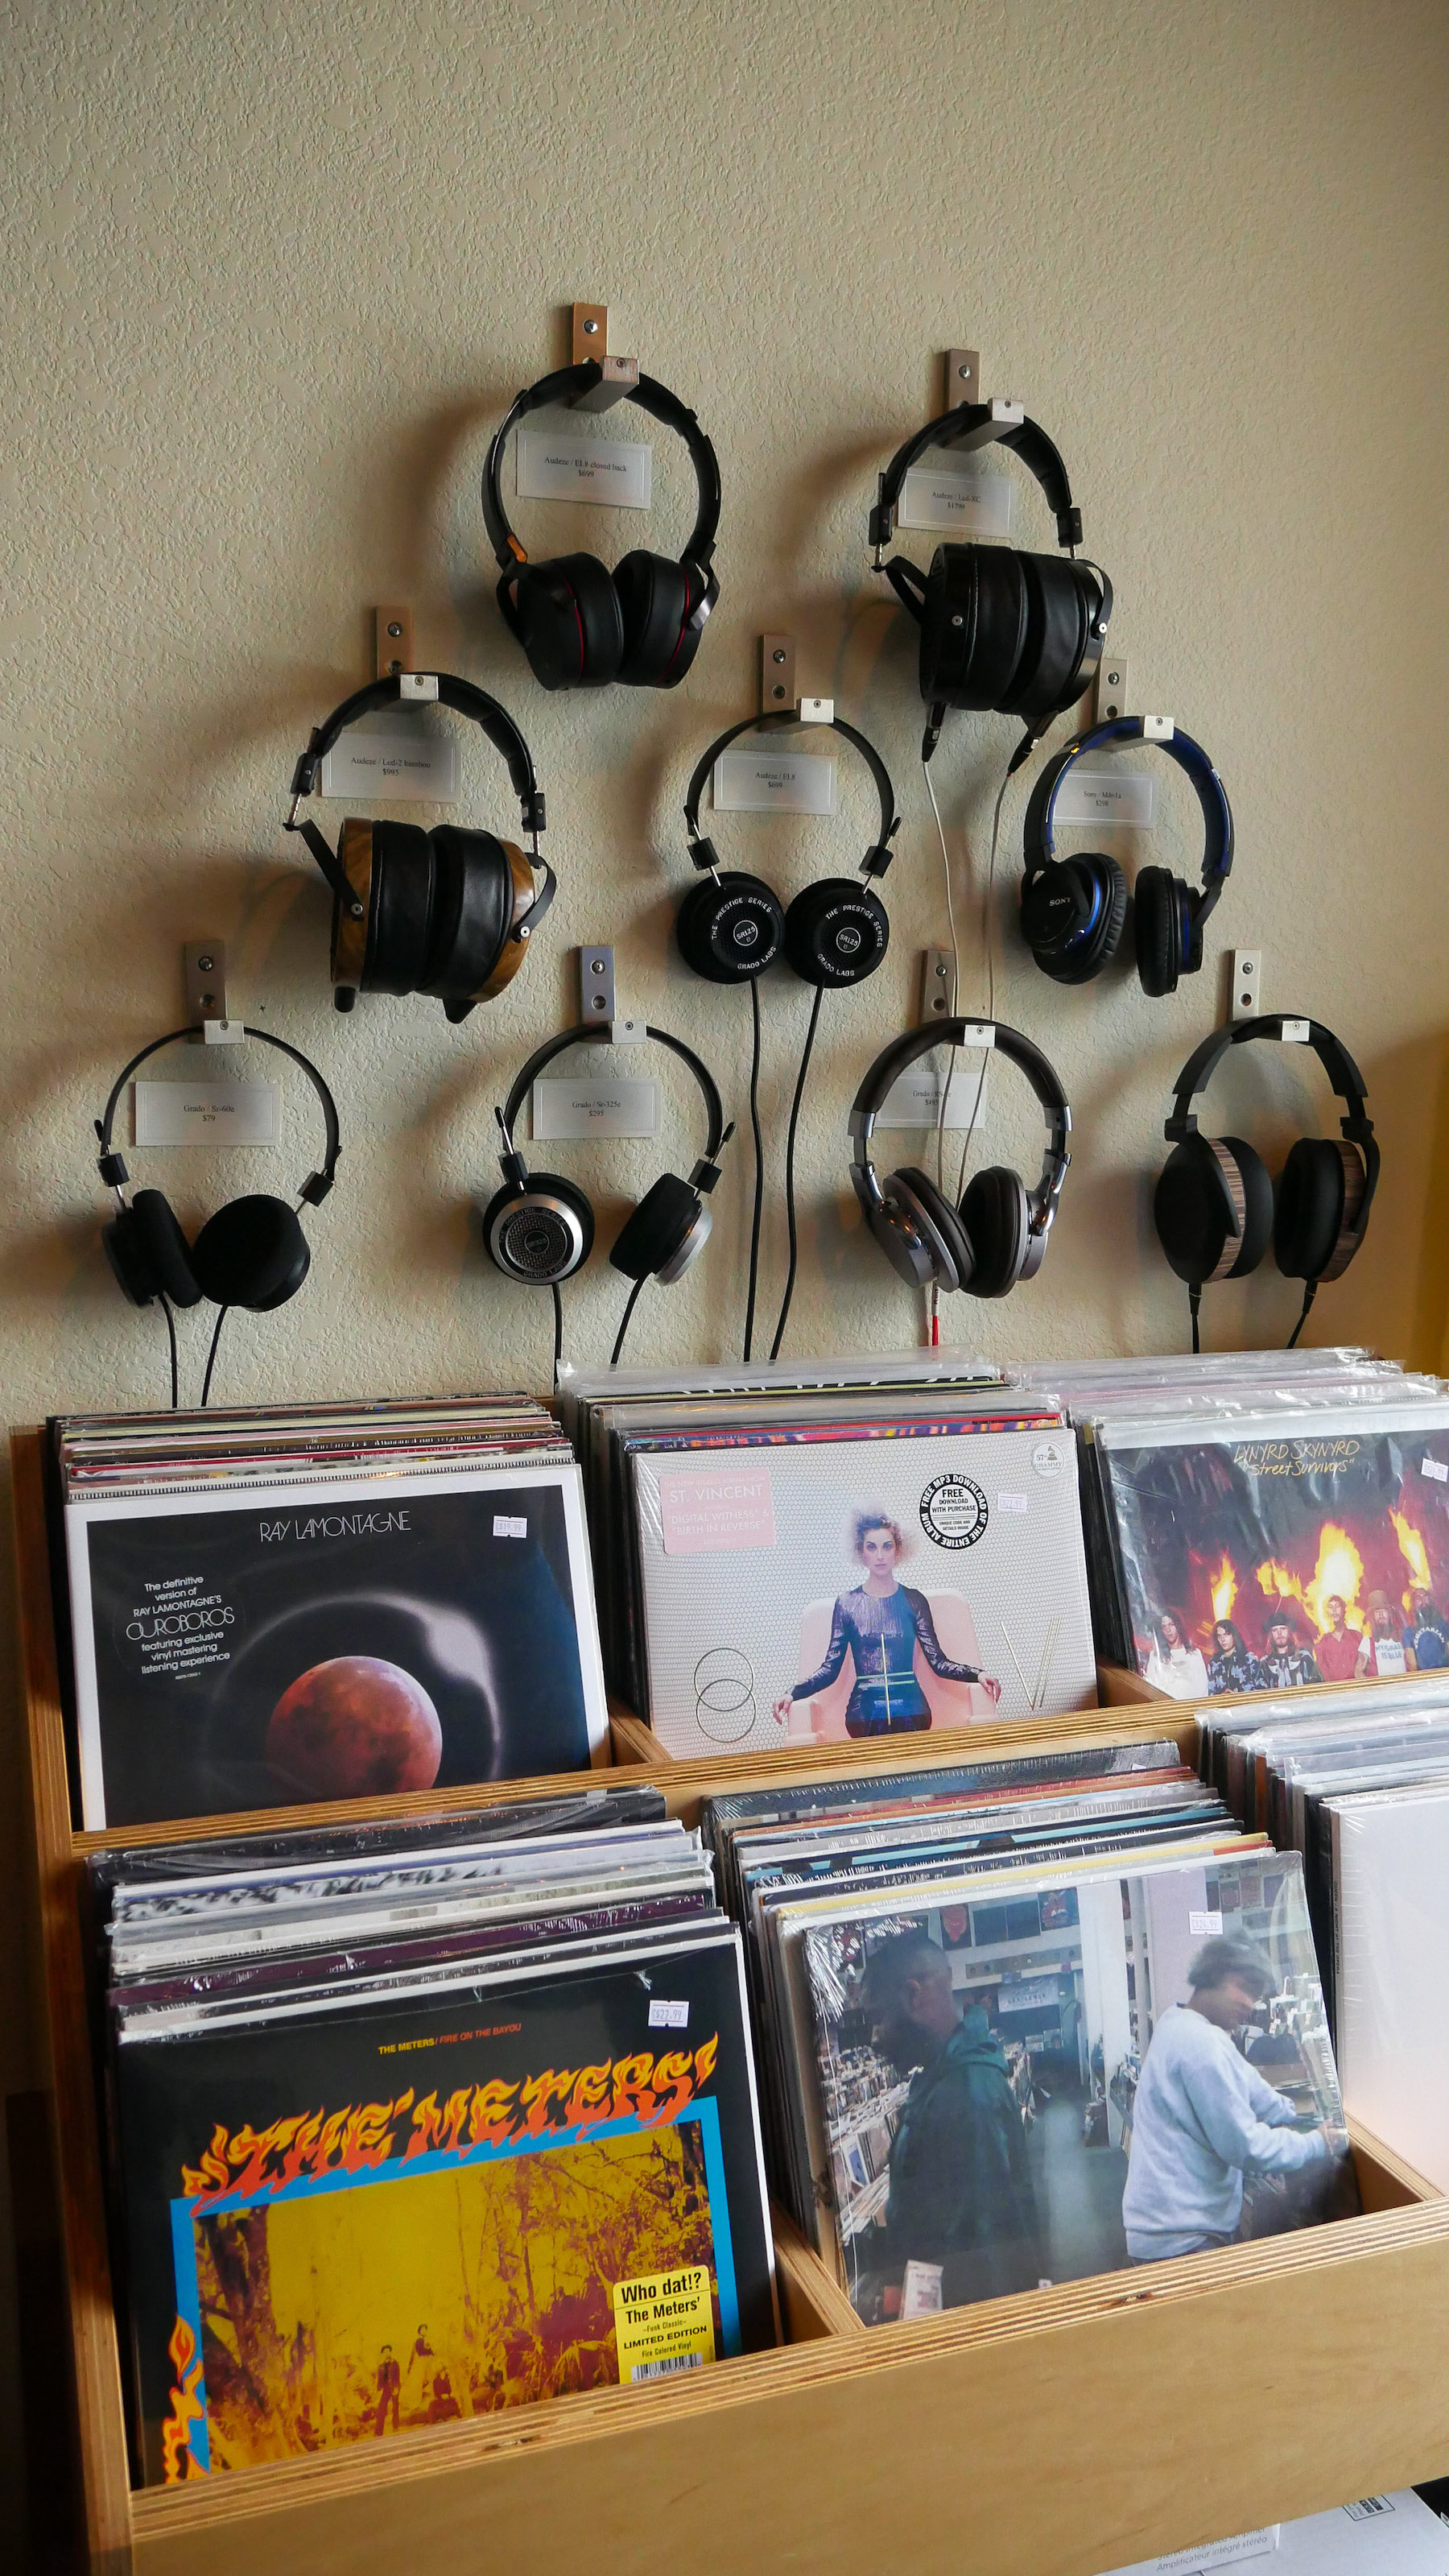 http://audiophilereview.com/images/Tec4.jpg